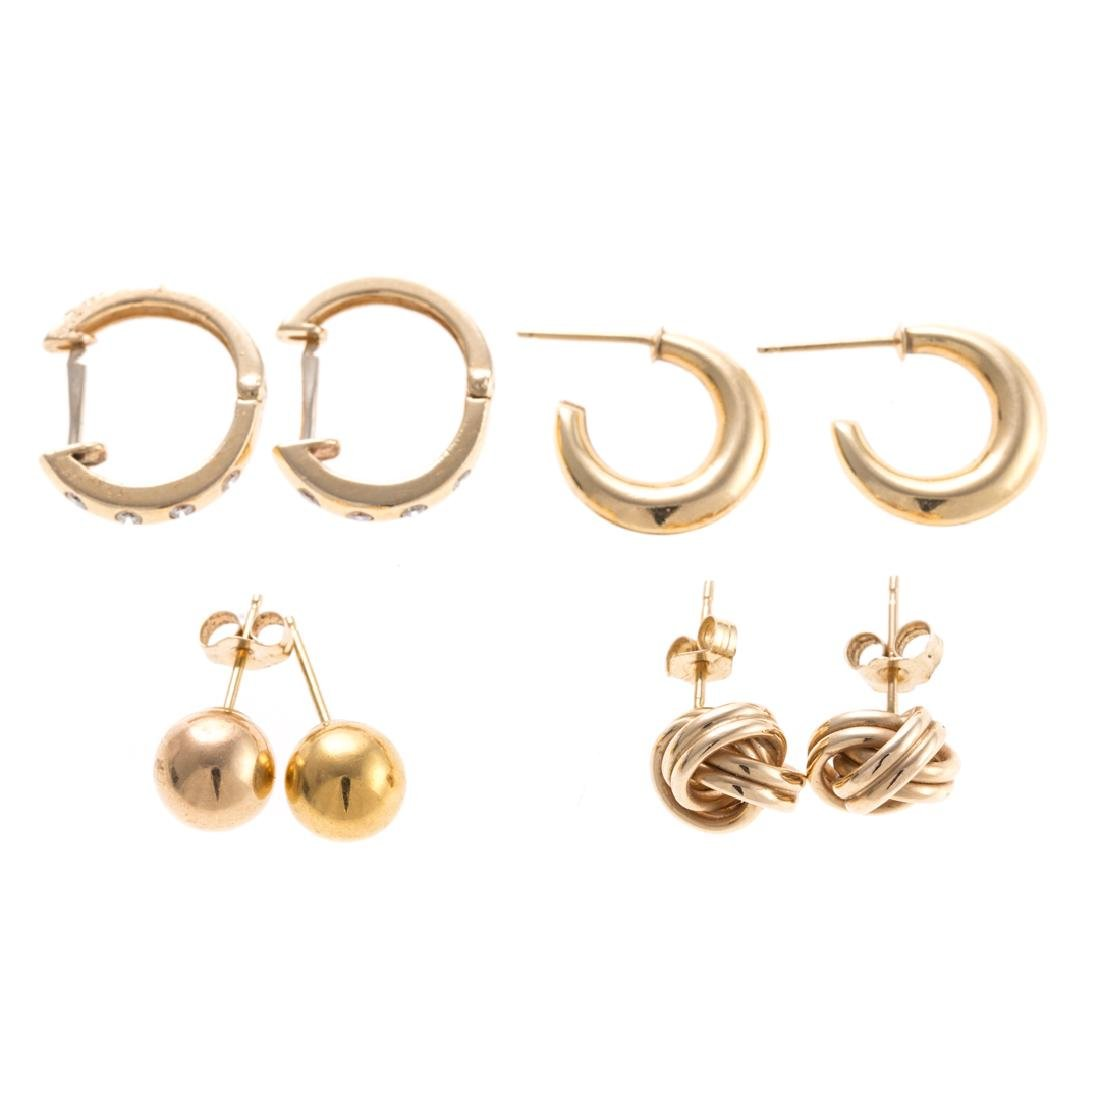 Four Pairs of Classic Hoops and Stud Earrings